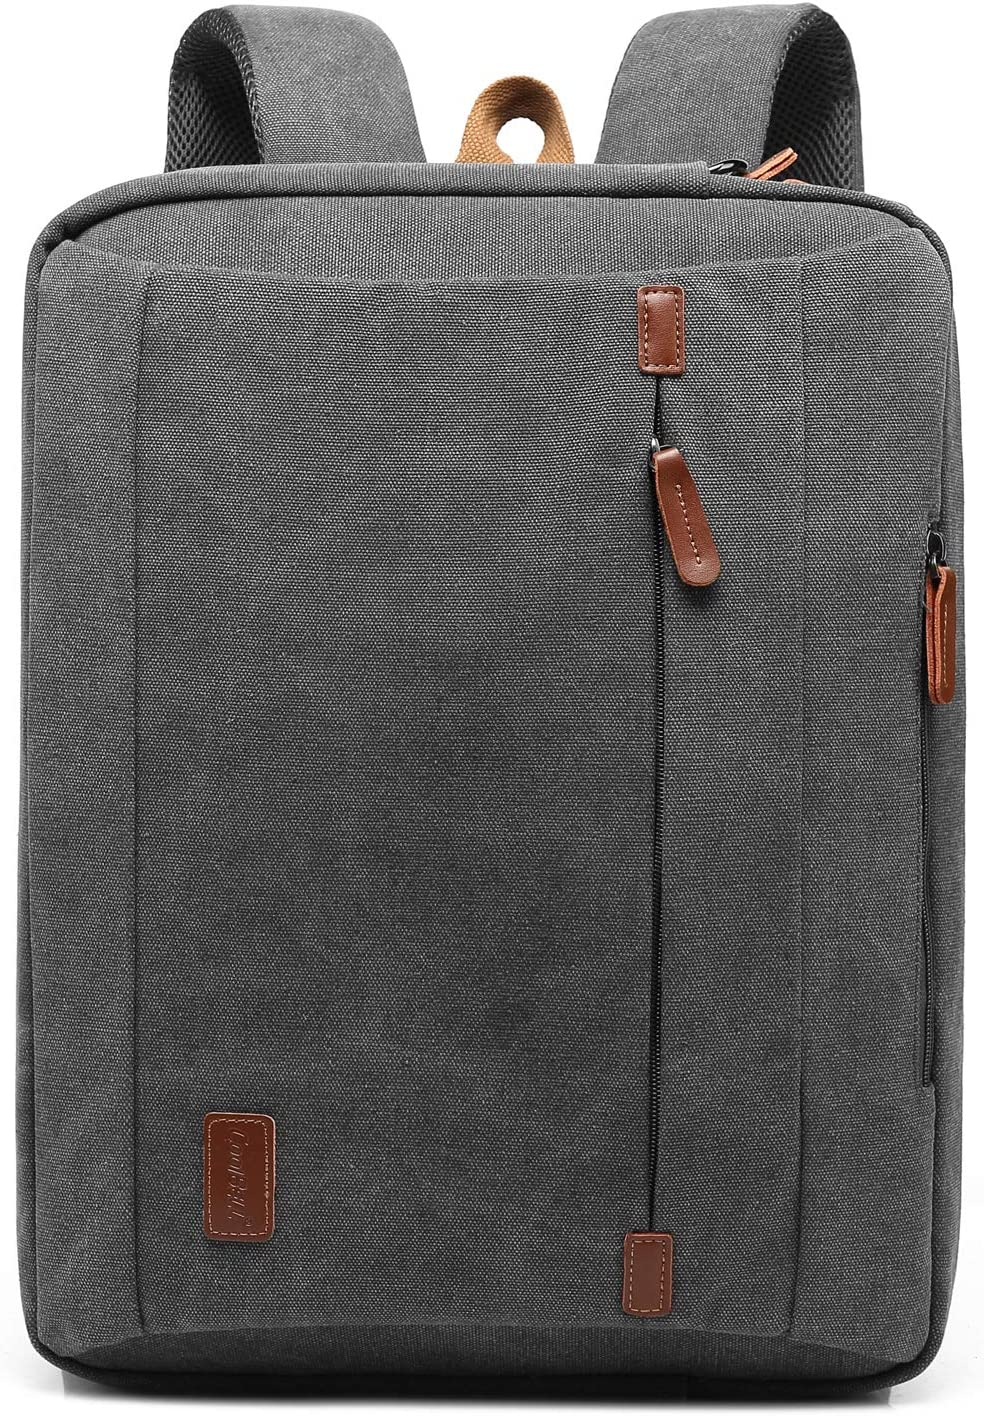 CoolBELL 15.6 Inches Convertible Laptop Messenger Bag Shoulder Bag Canvas Backpack Oxford Cloth Multi-Functional Briefcase for Laptop/MacBook/Tablet (Canvas Dark Grey)